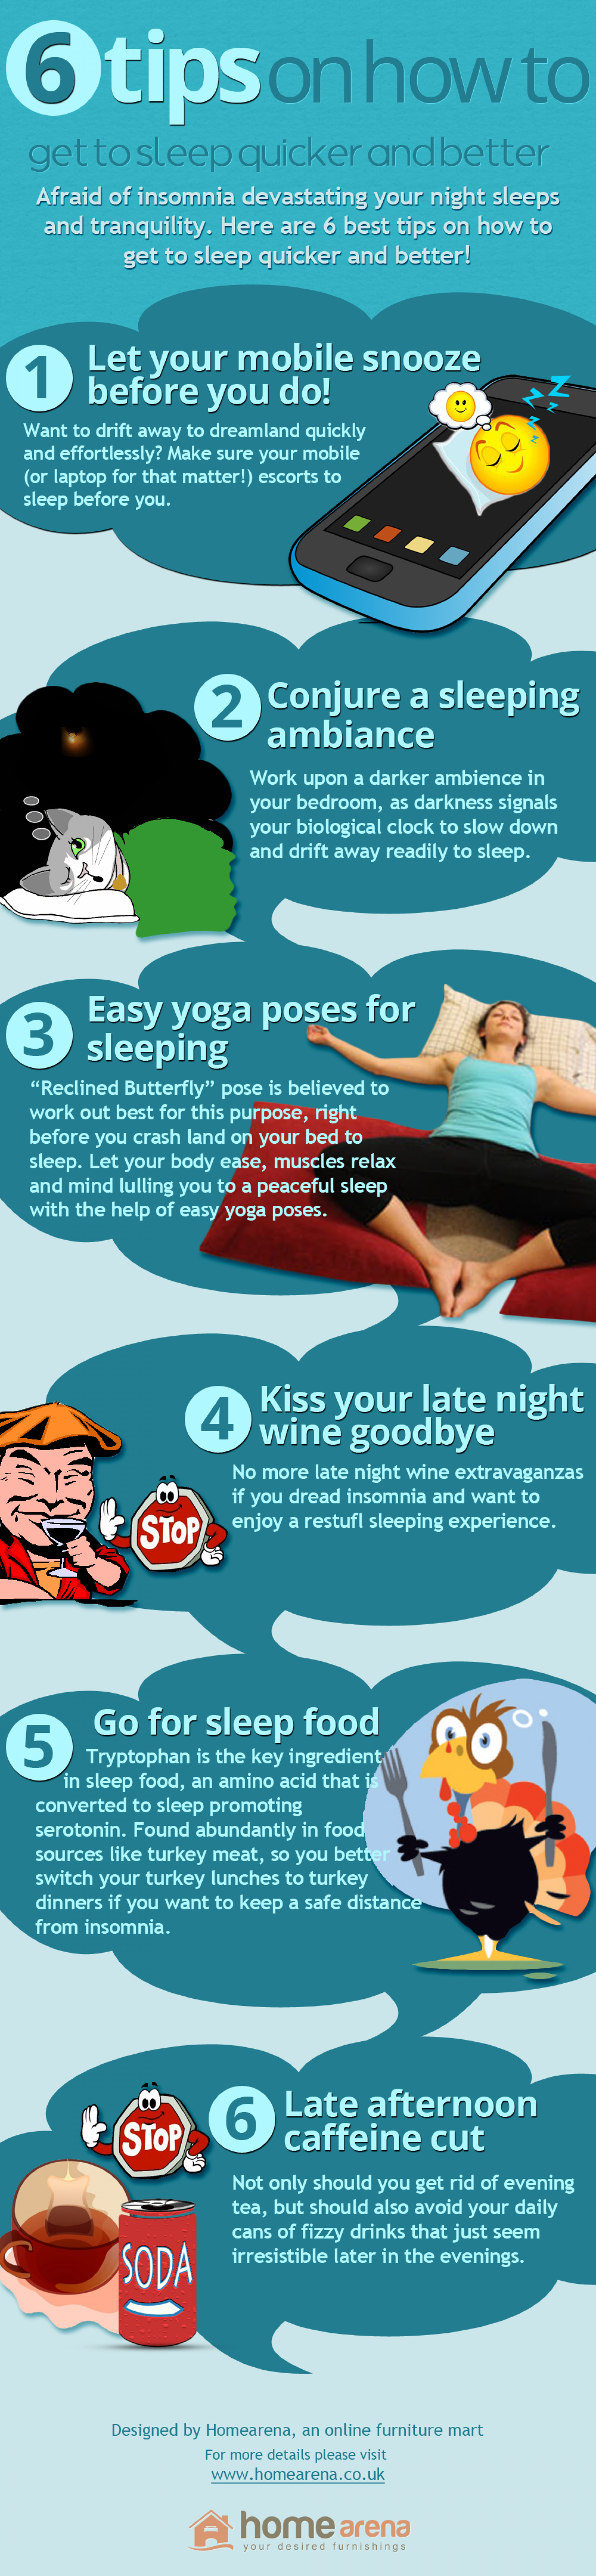 6 Tips on How to Get to Sleep Quicker and Better Infographic